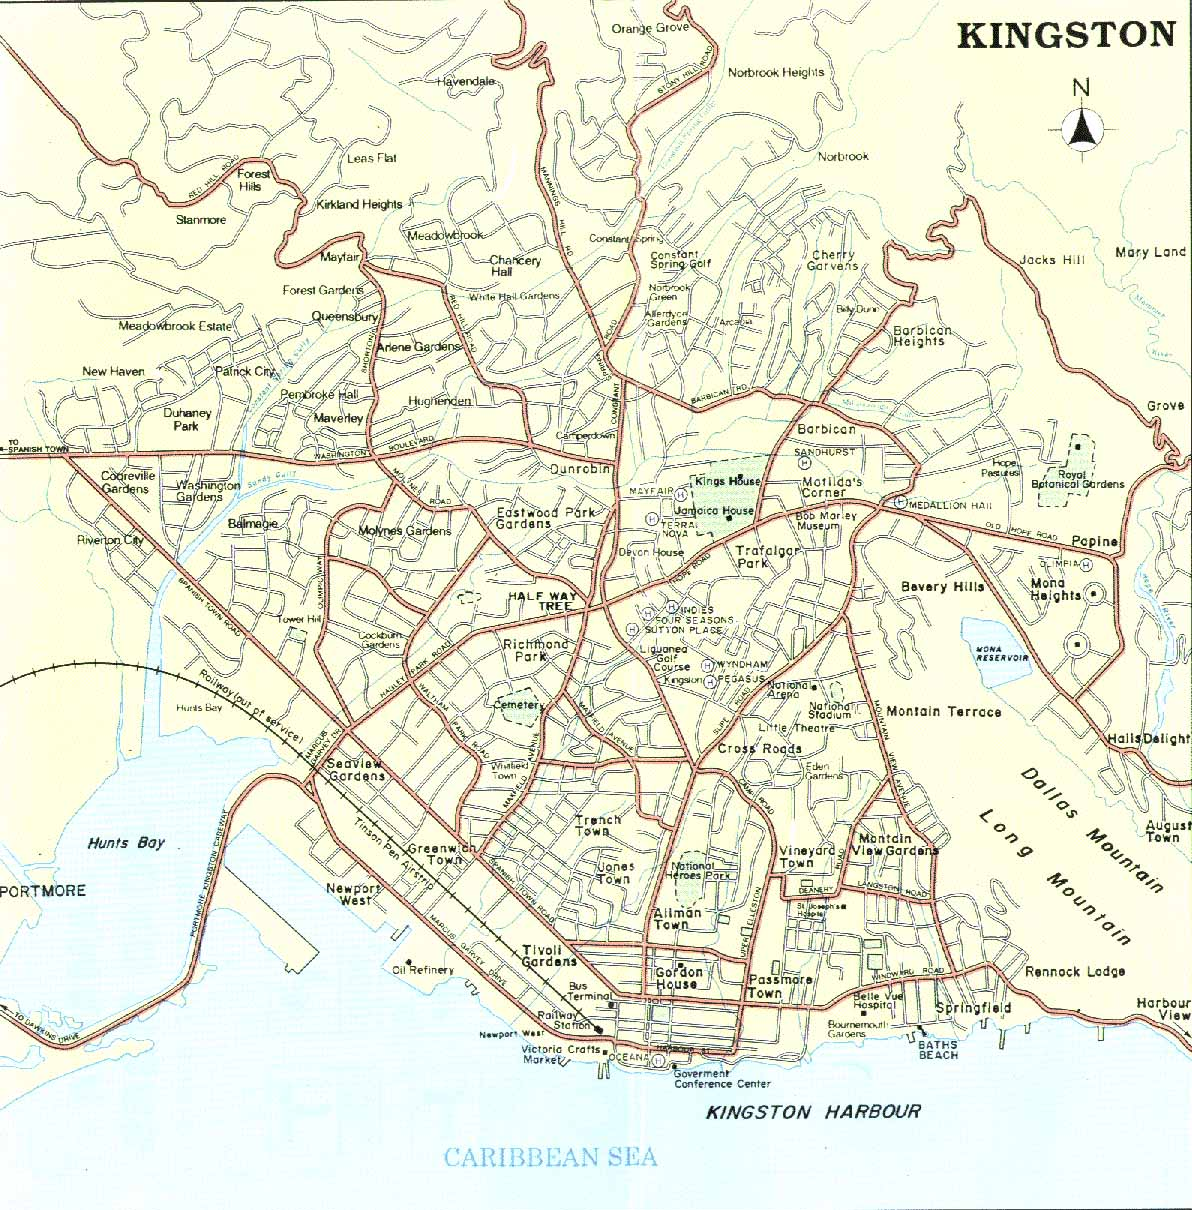 Kingston Street Map Kingston Jamaica mappery